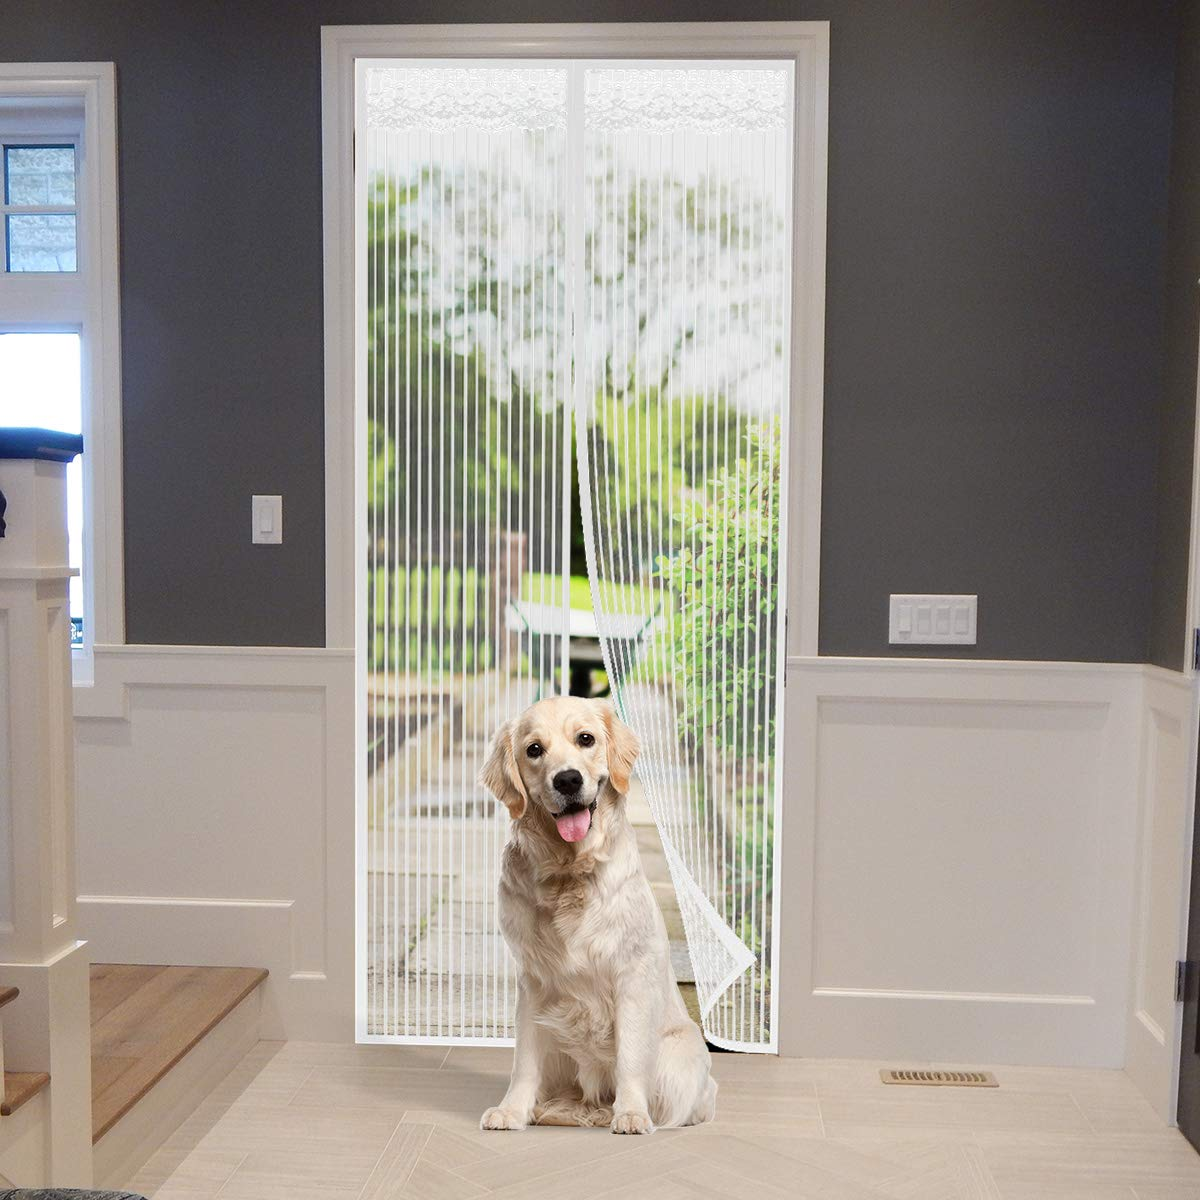 XIAO MO GU Magnetic Screen Door Keep Away from Insects & Mosquito Curtain, Top-to-Bottom Seal Automatically, Suitable for Exterior Back Doors, Front Doors, Pet Screen Door, Living Room Children's Room ( Black 90x210cm )